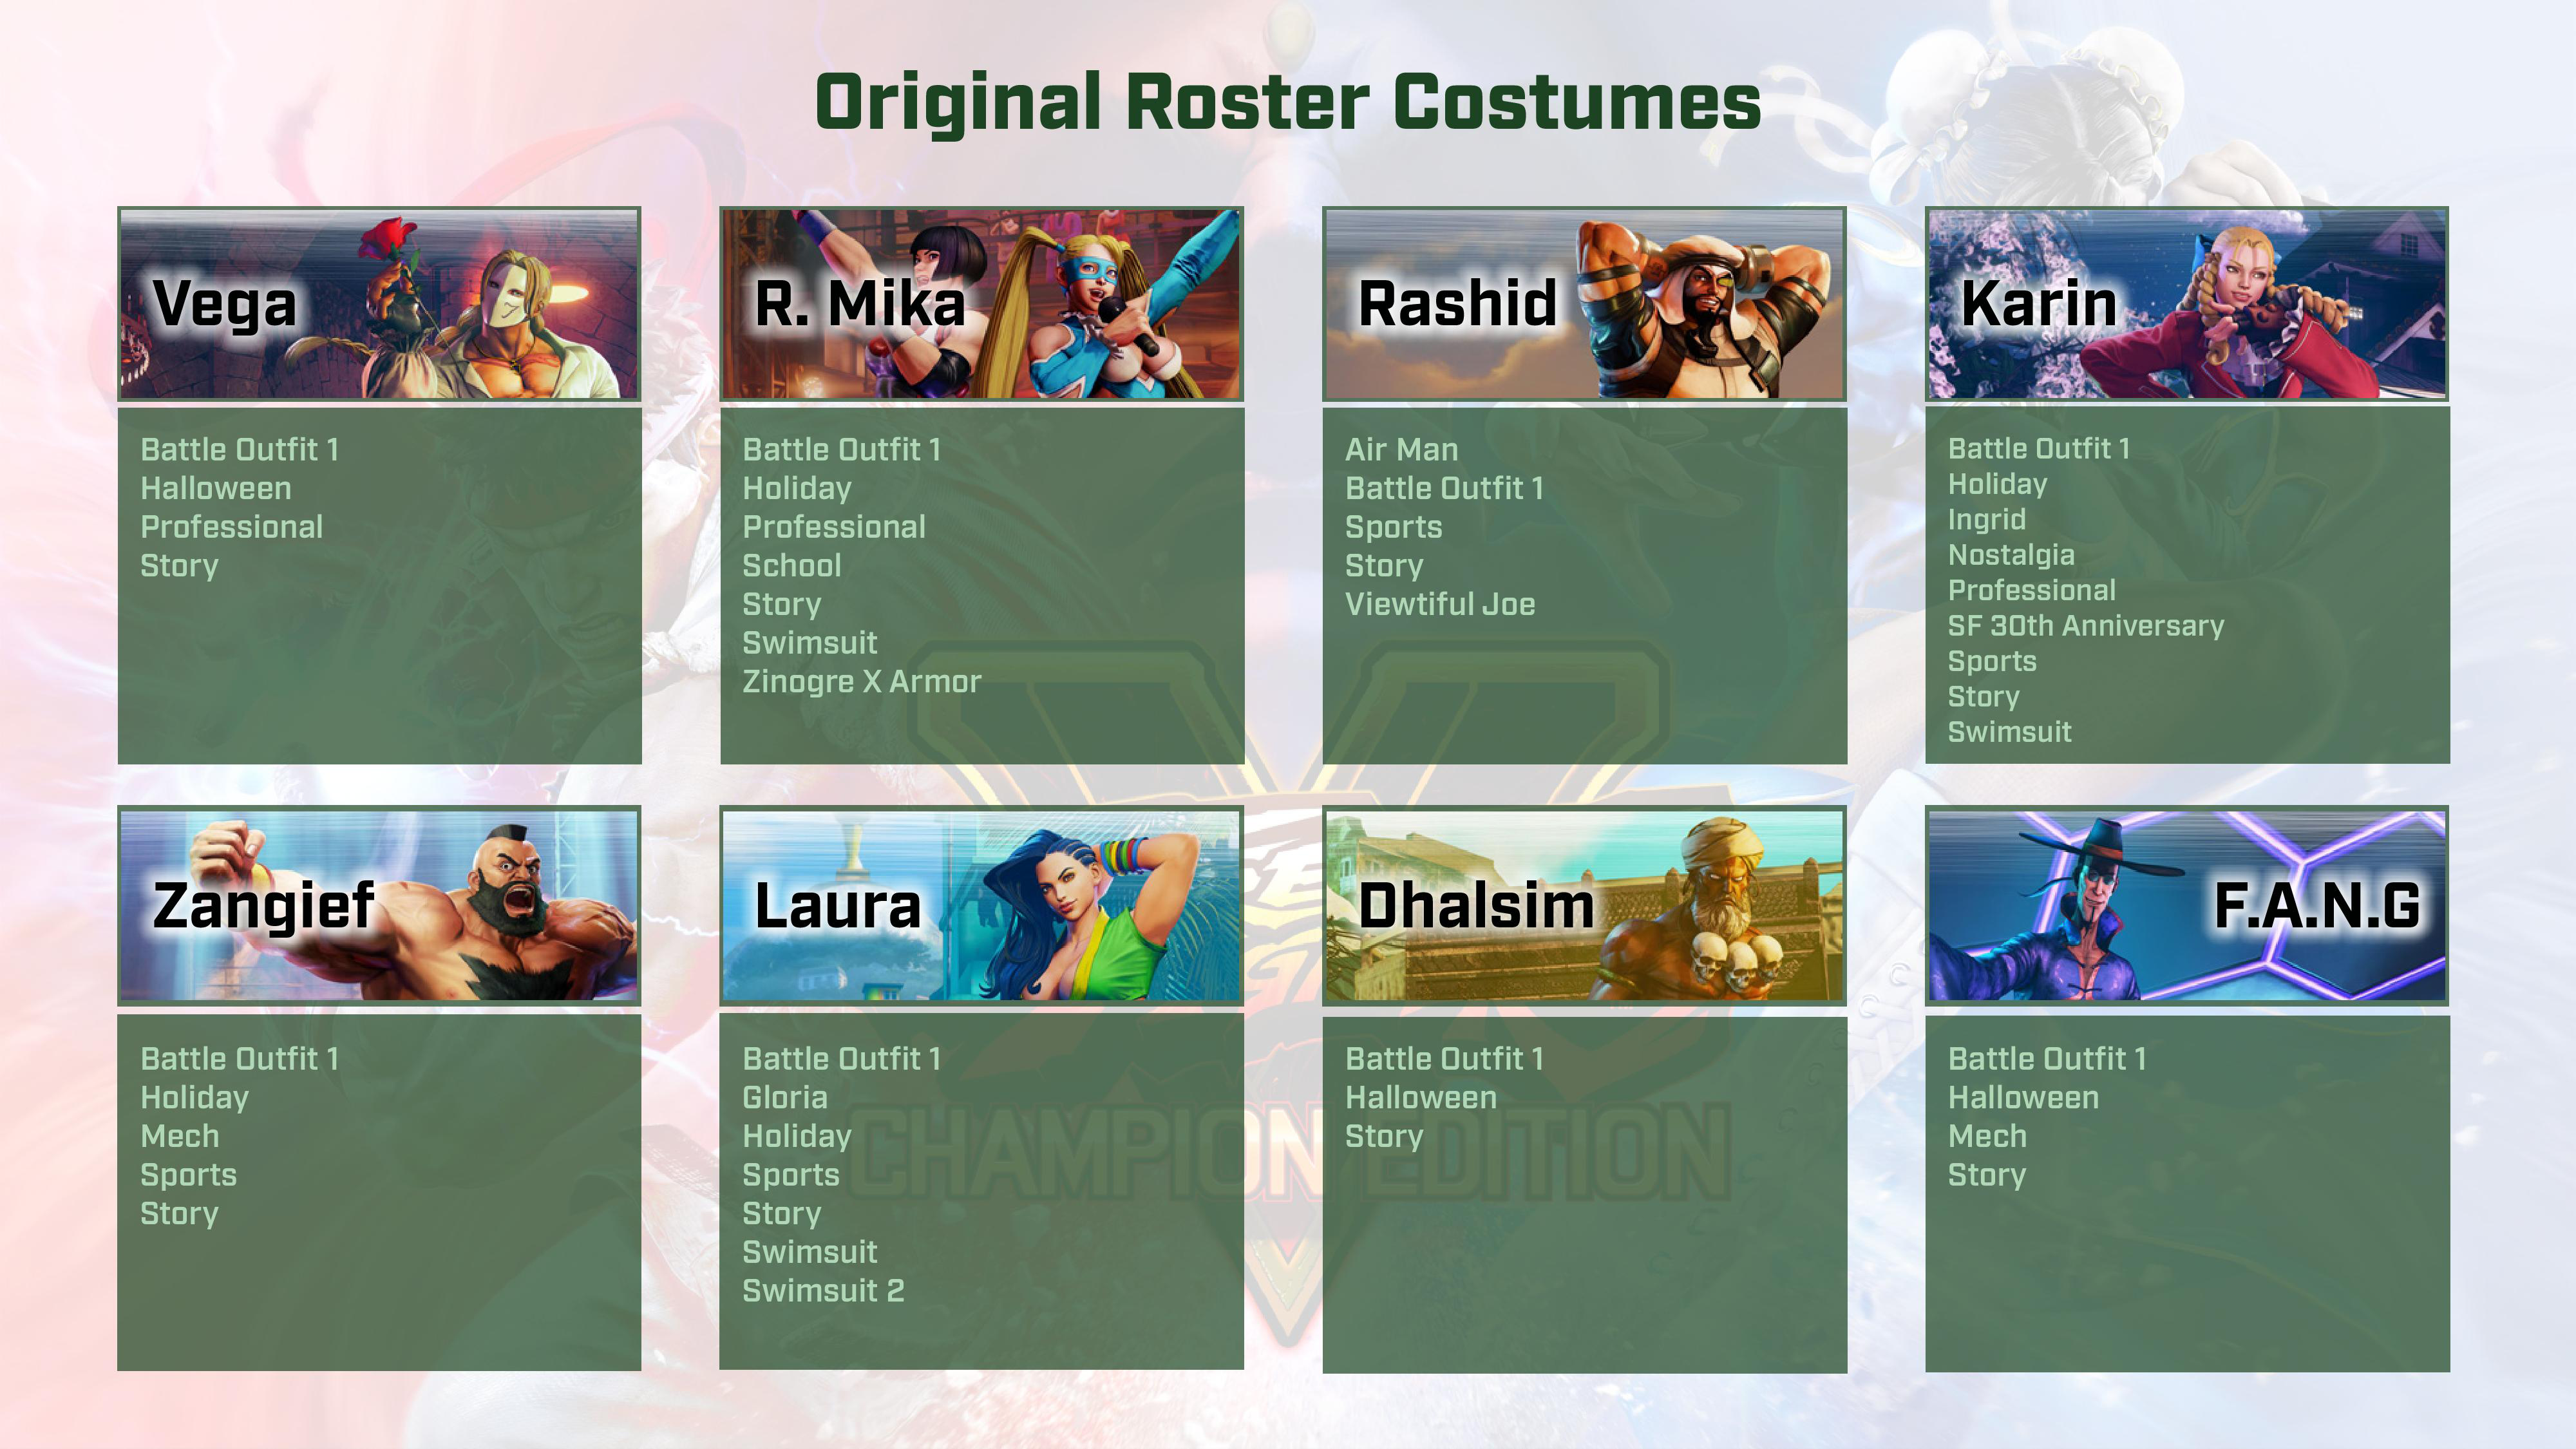 Street Fighter 5: Champion Edition contents 2 out of 9 image gallery